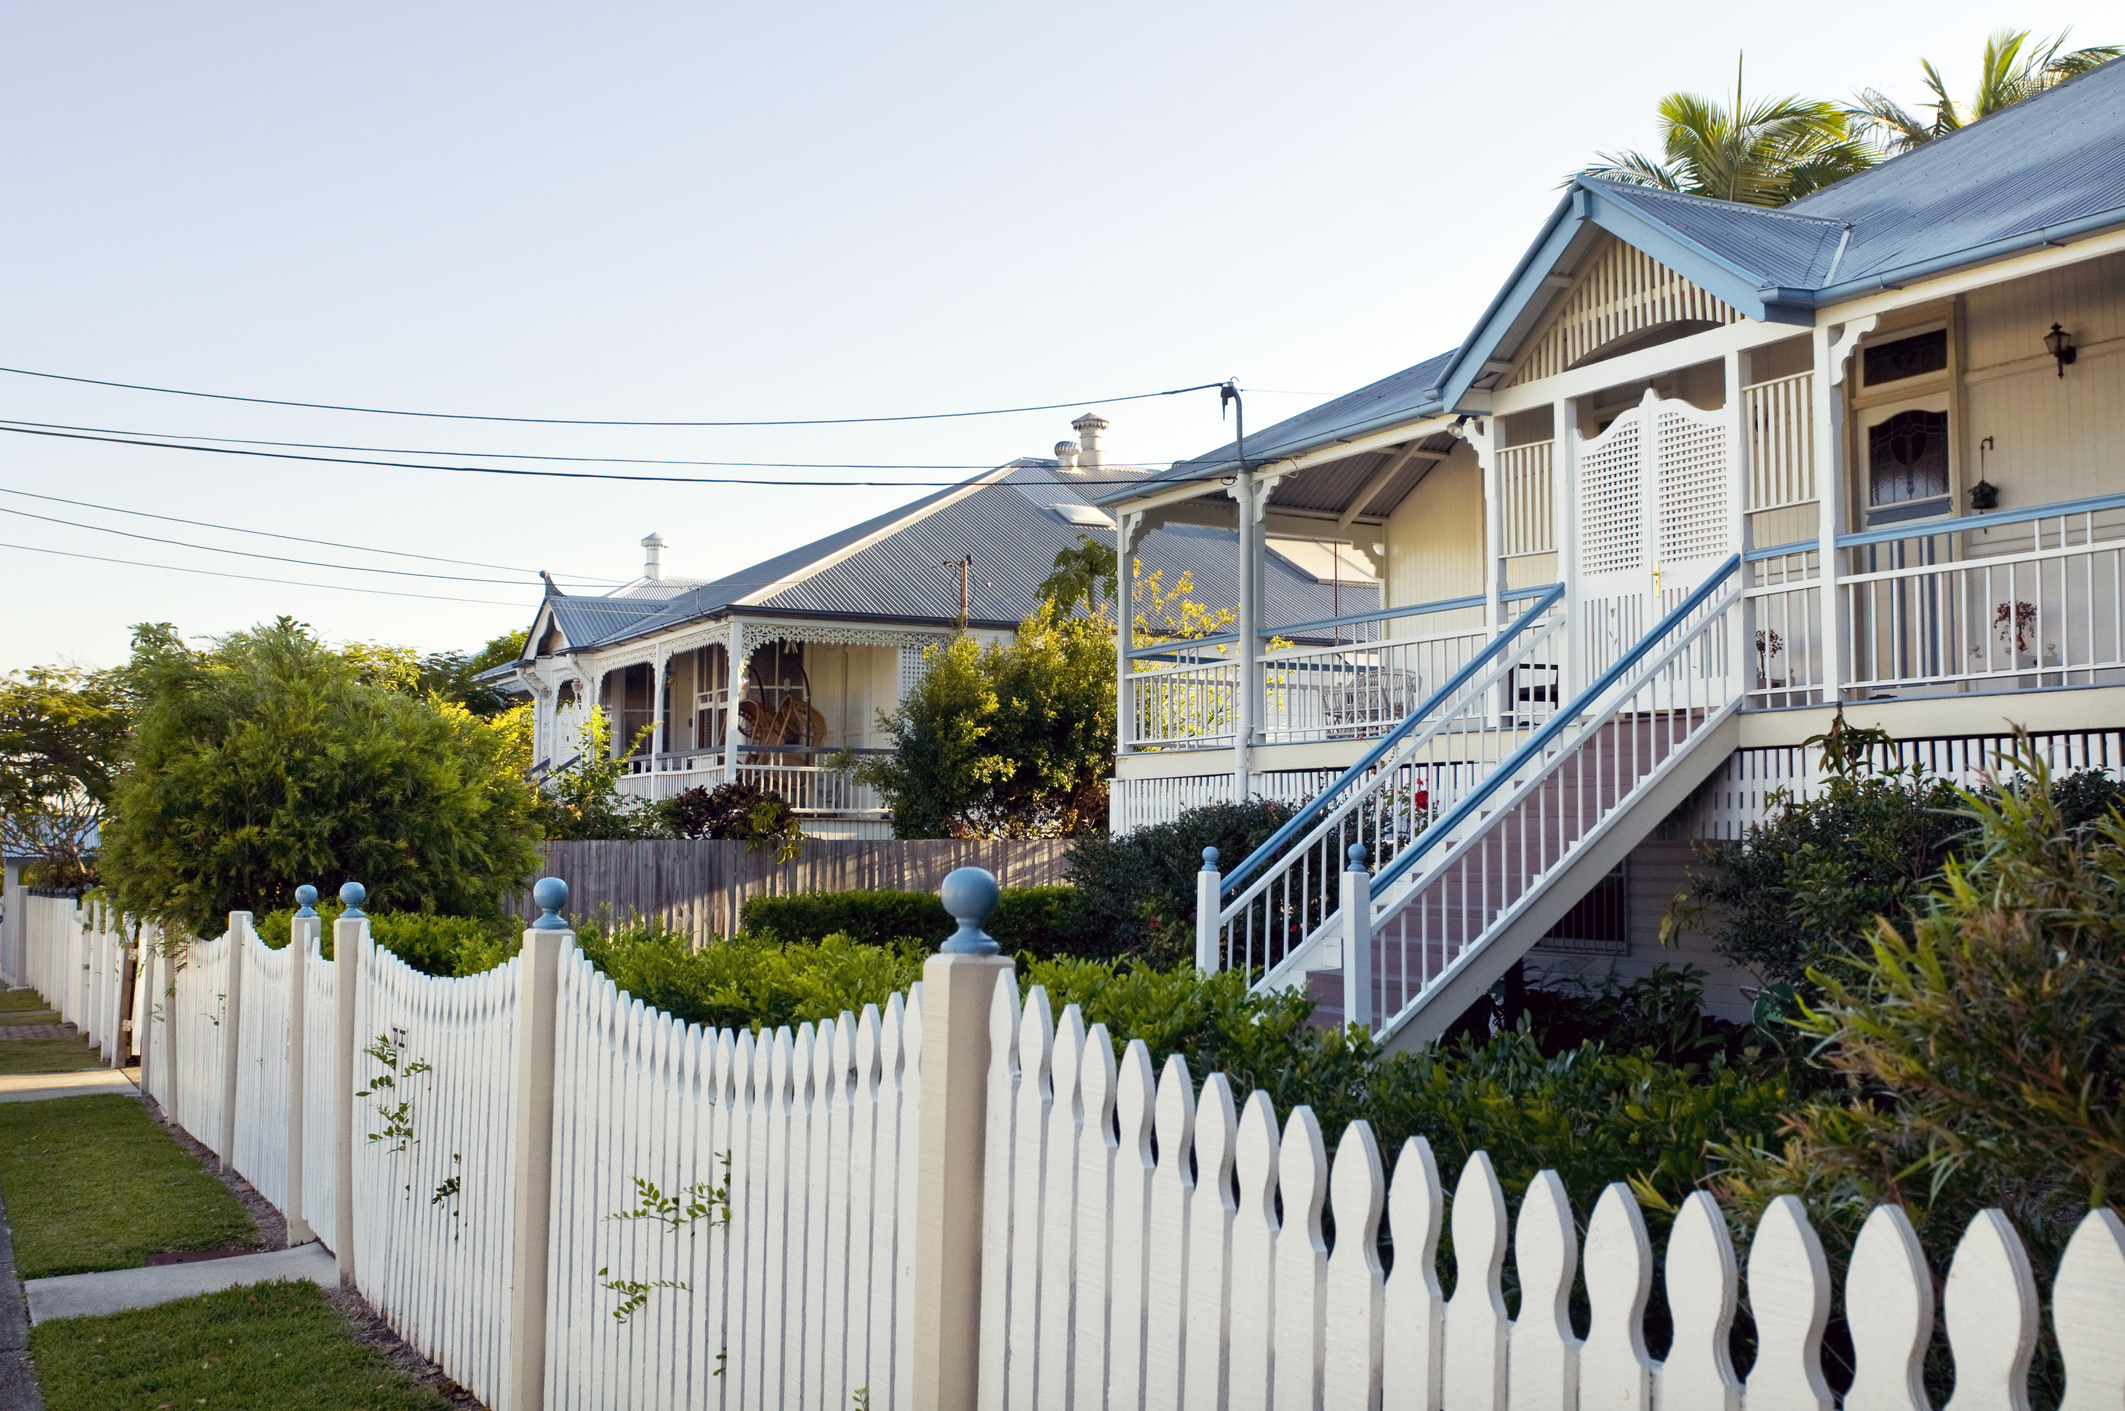 The opportunities and hazards of renovating a traditional Queenslander